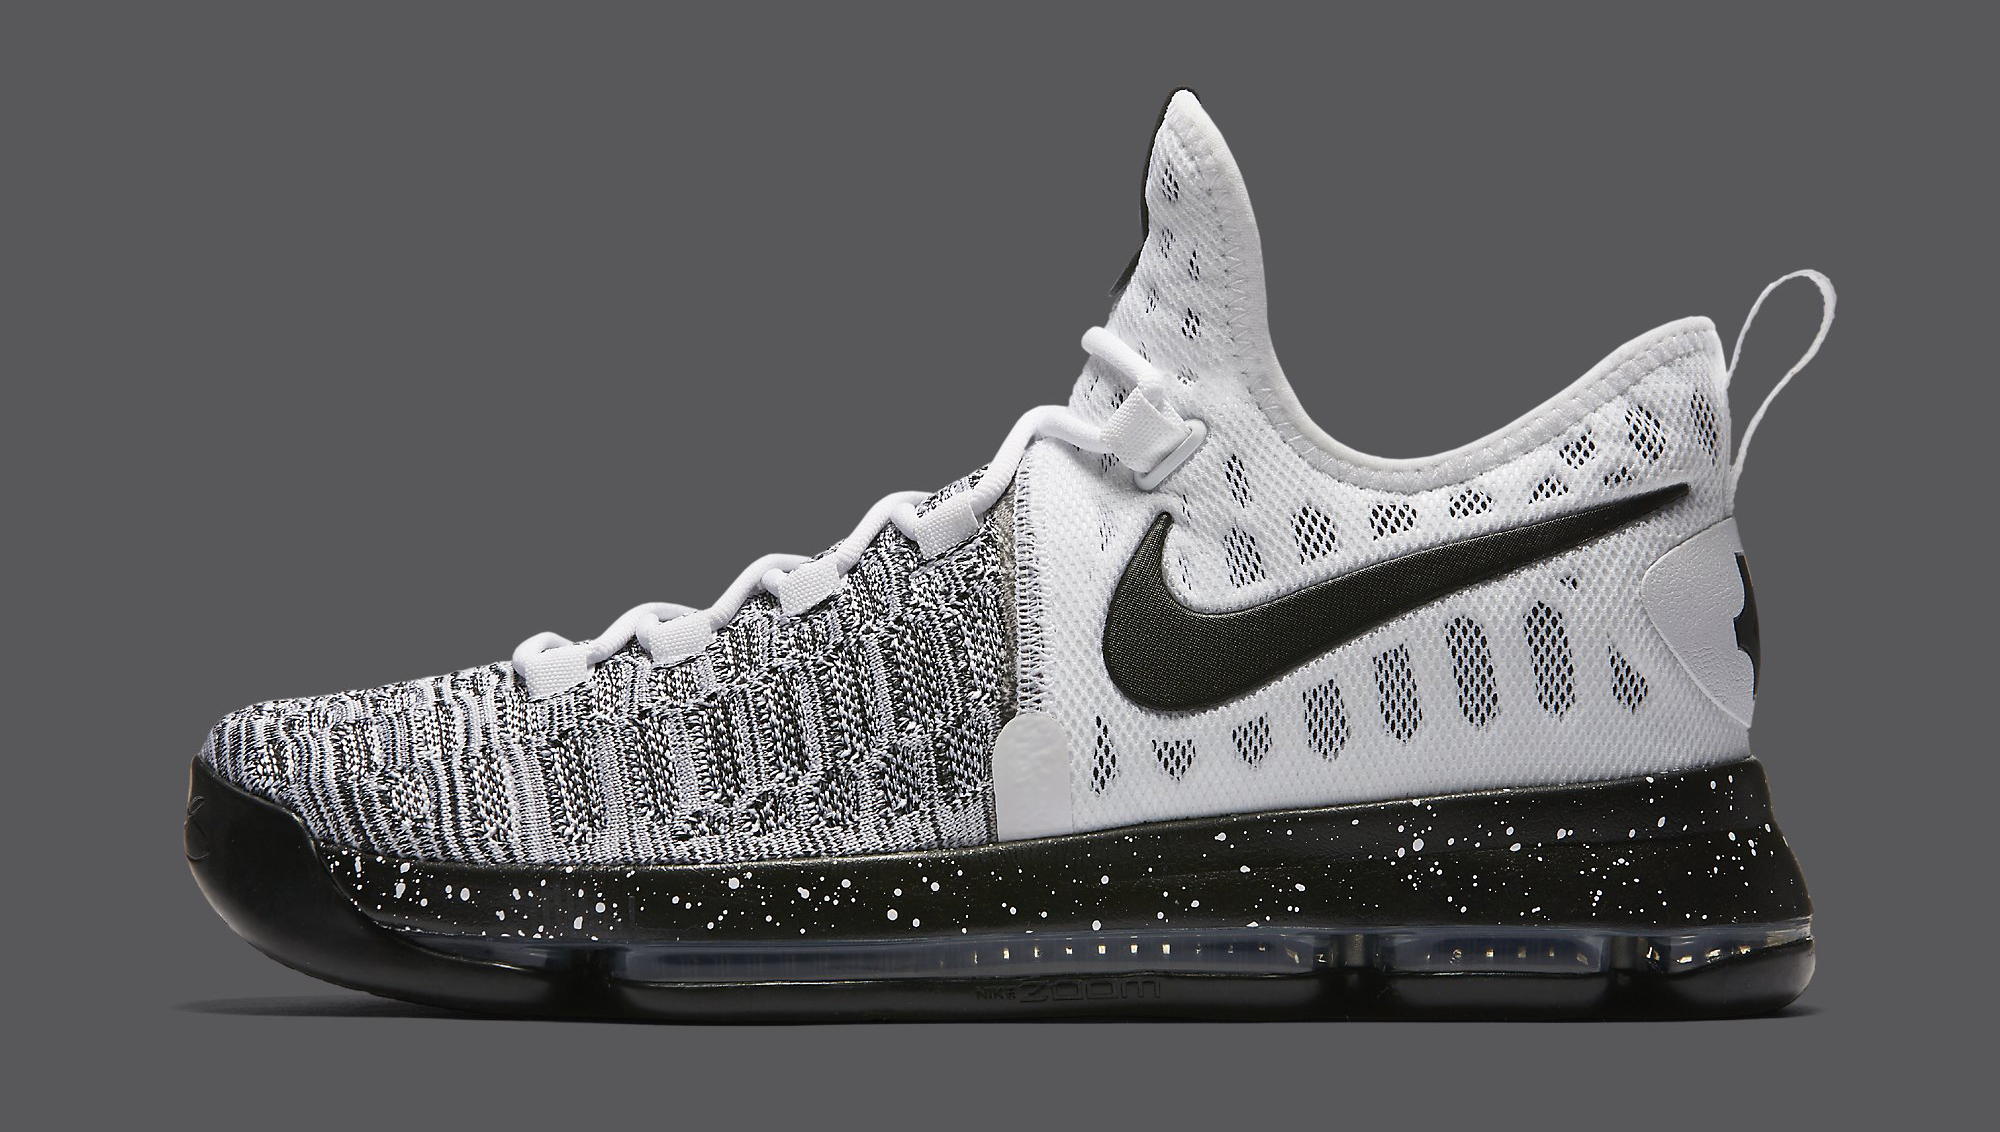 huge discount c7561 2a579 Nike KD 9 White Black Oreo 843392-100 Profile